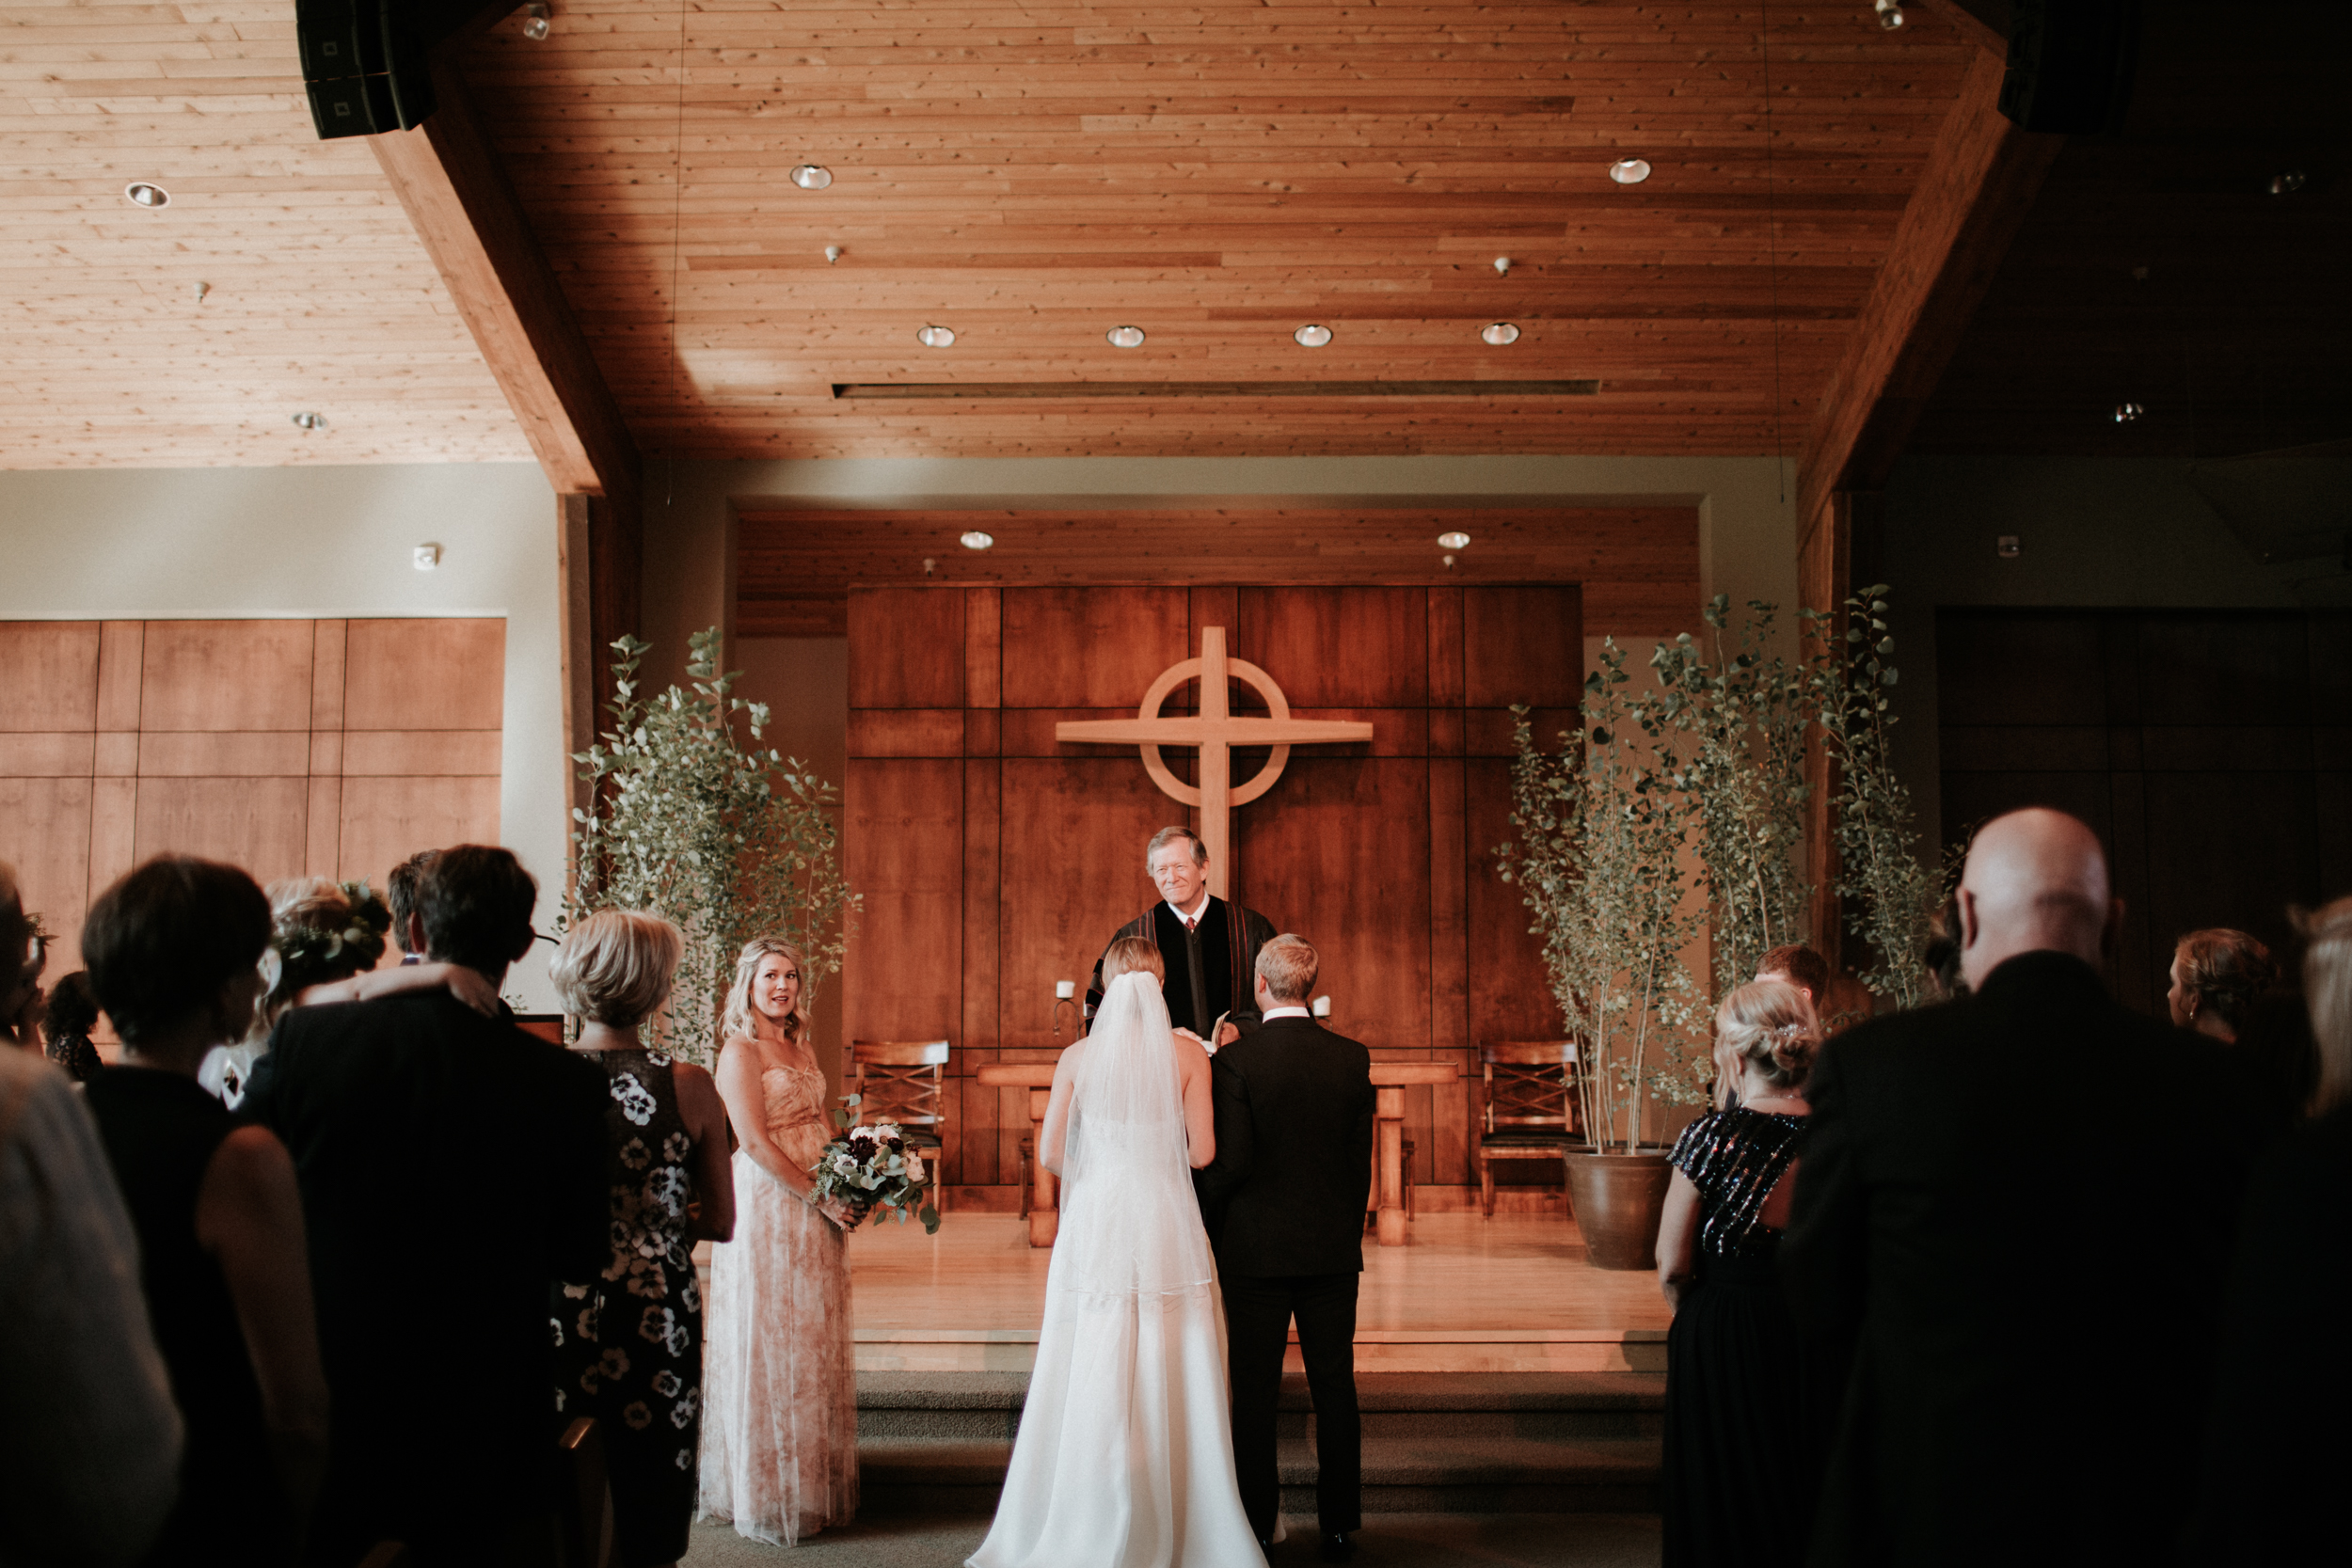 mad_Jon_Sun_valley_idaho_wedding-47.jpg